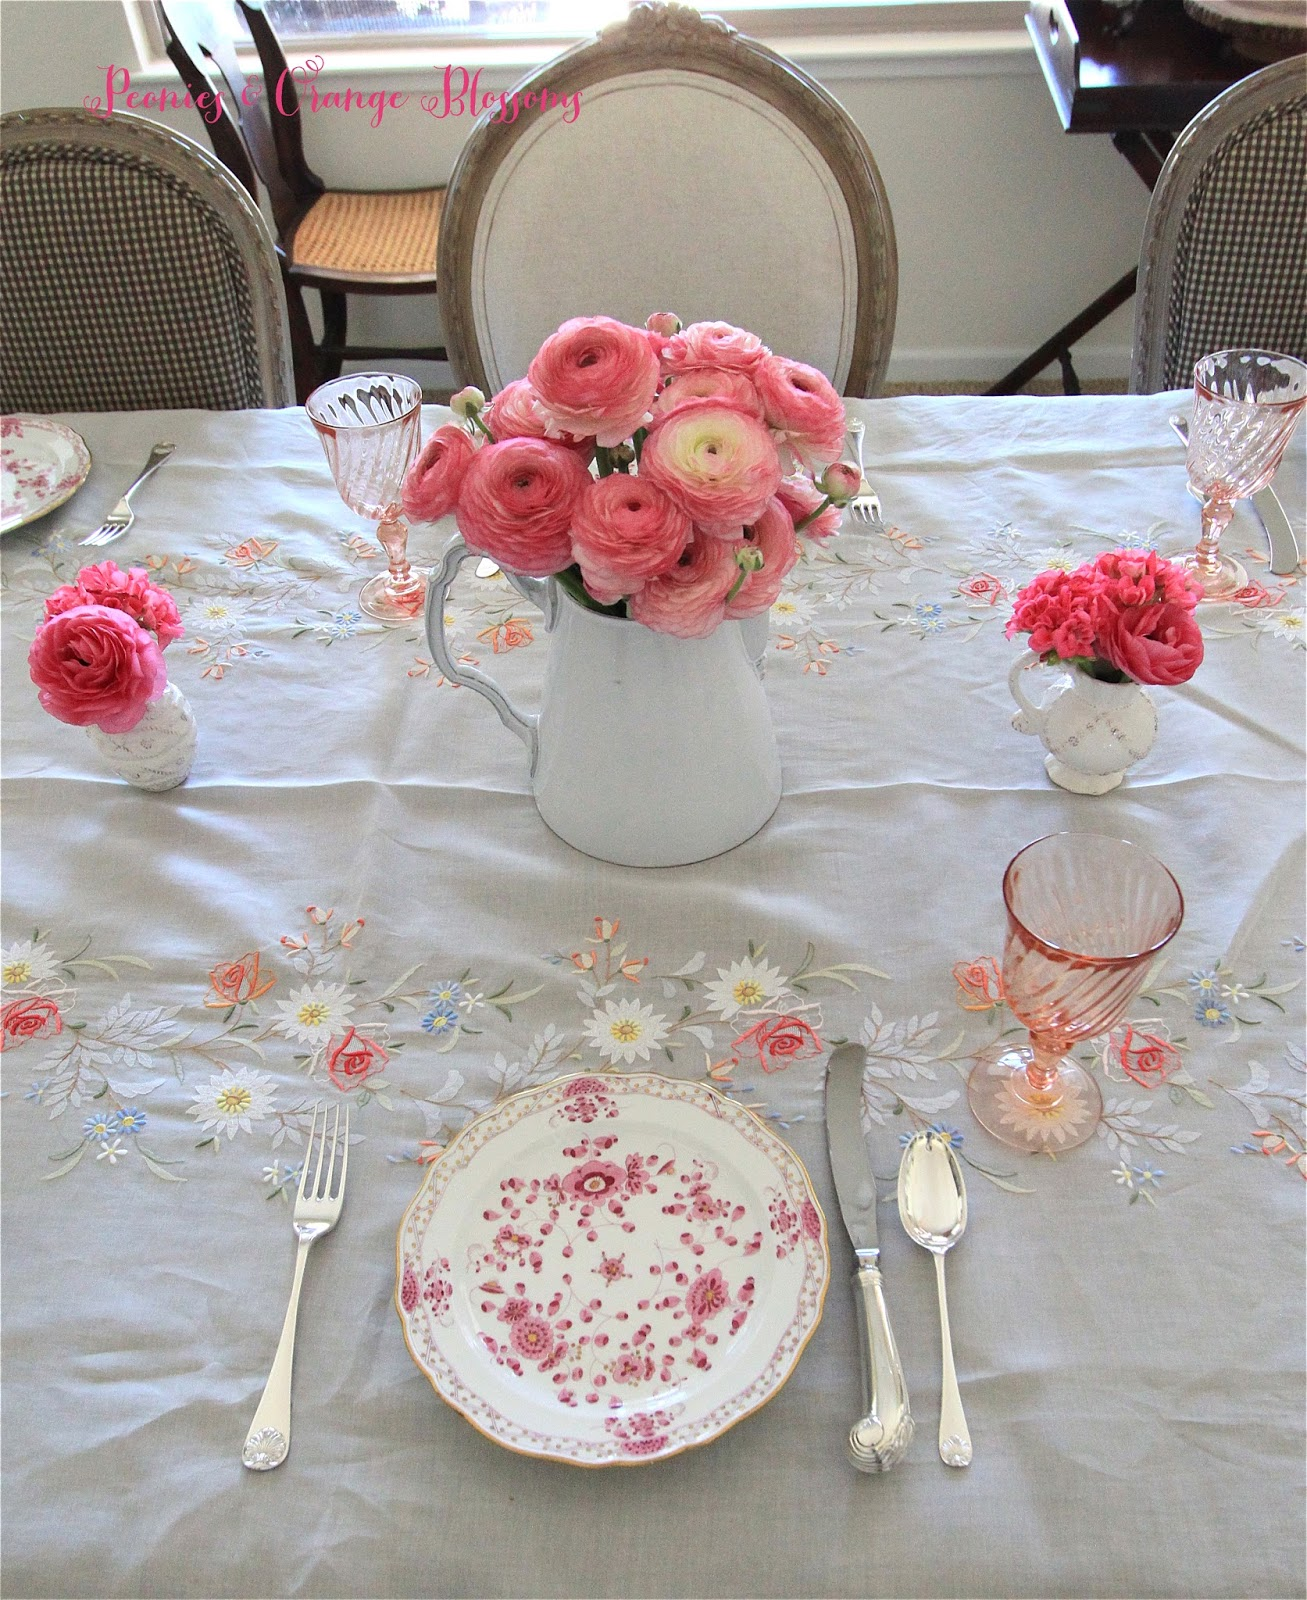 Spring French table setting with Madeira table cloth Meissen plates pink and white ranunculus : french table setting - pezcame.com